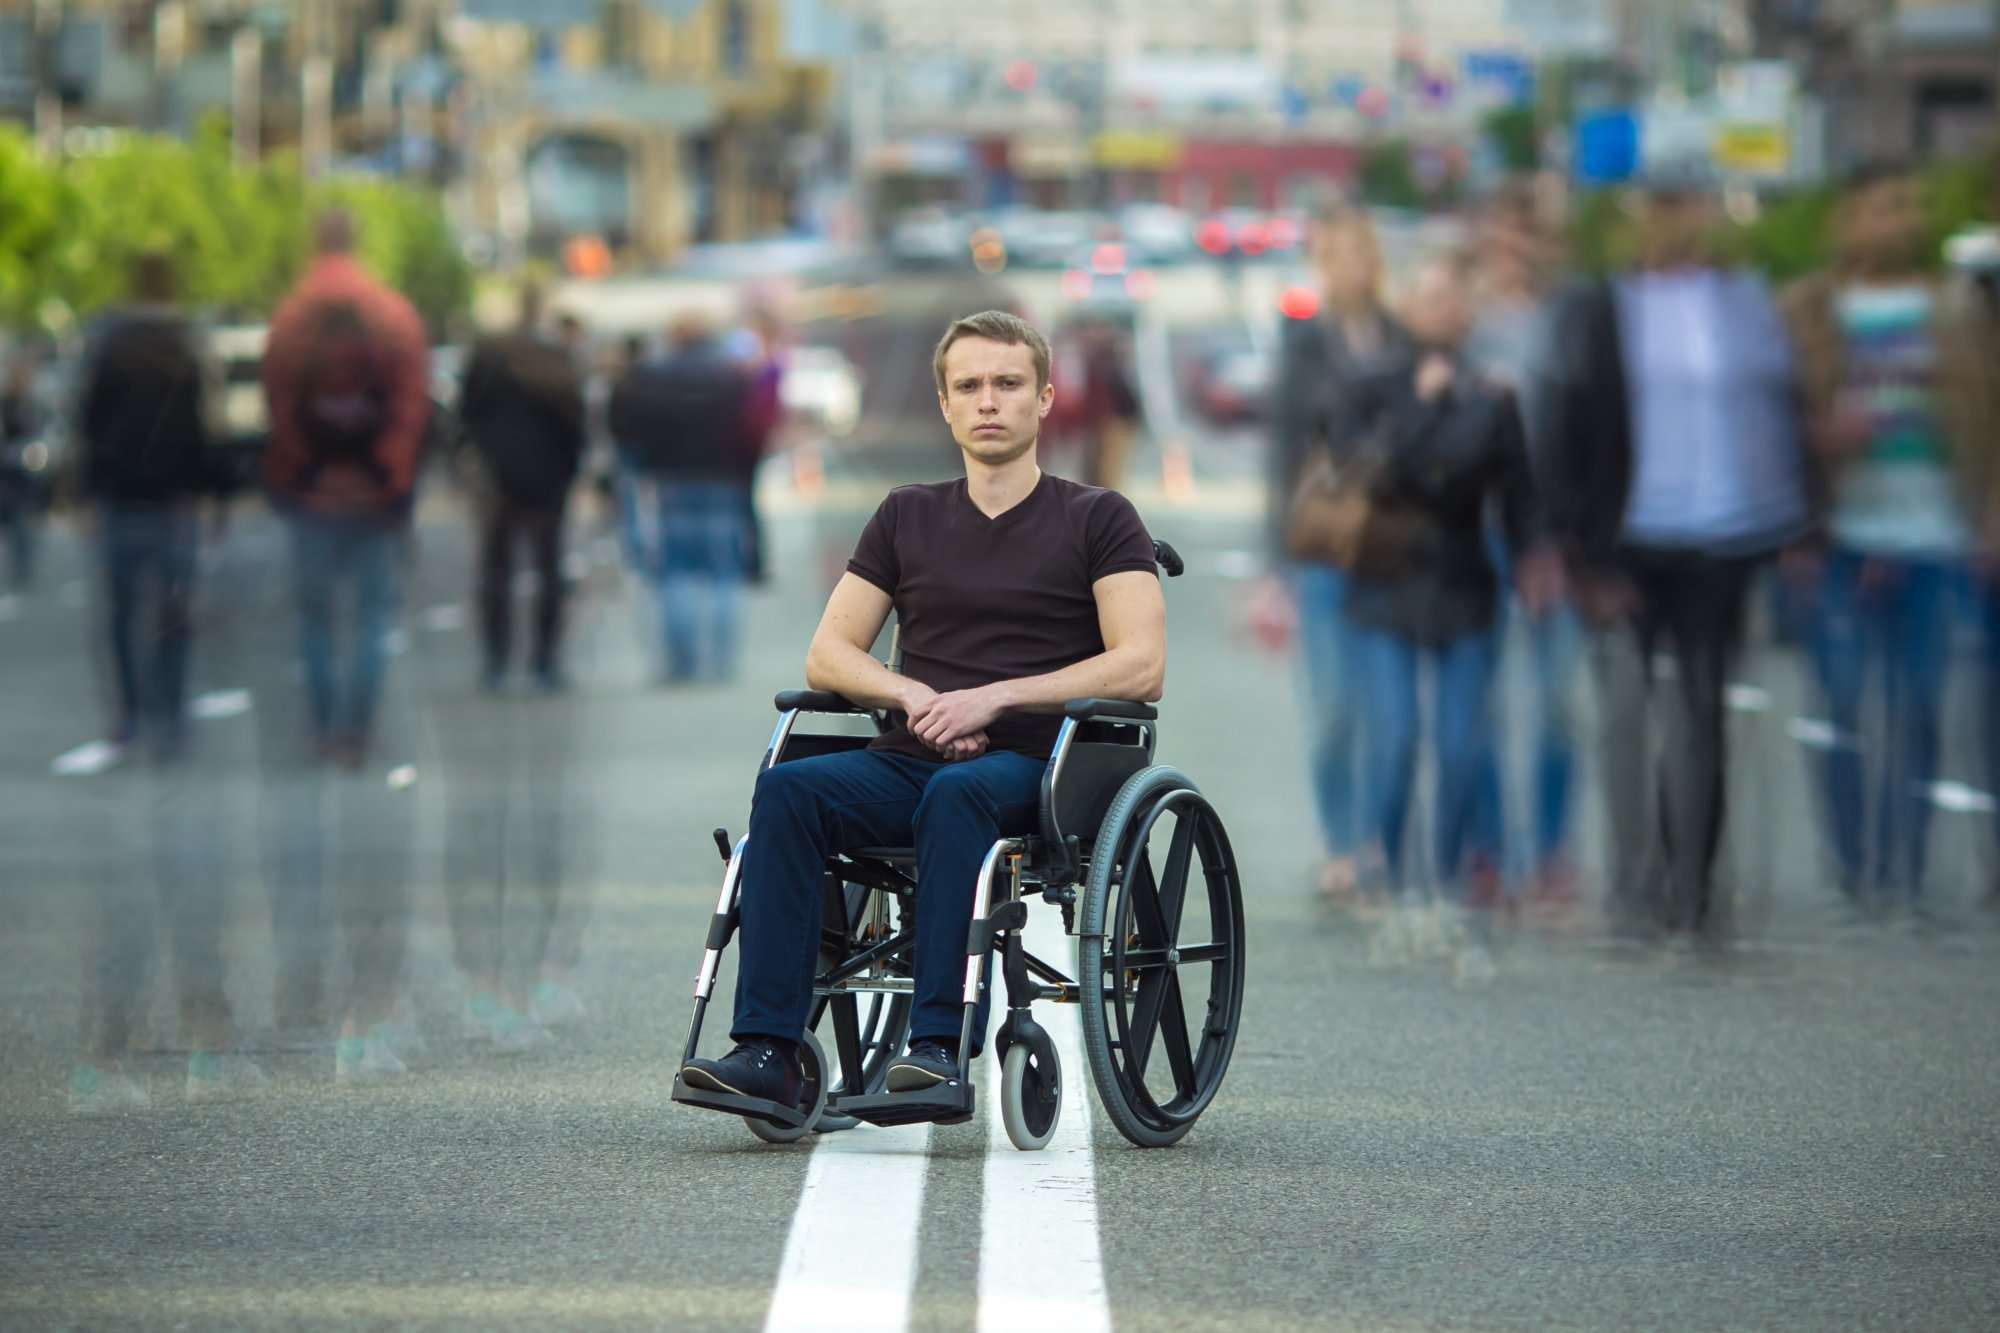 Young man in wheelchair sits in middle of road, opposite direction from crowd